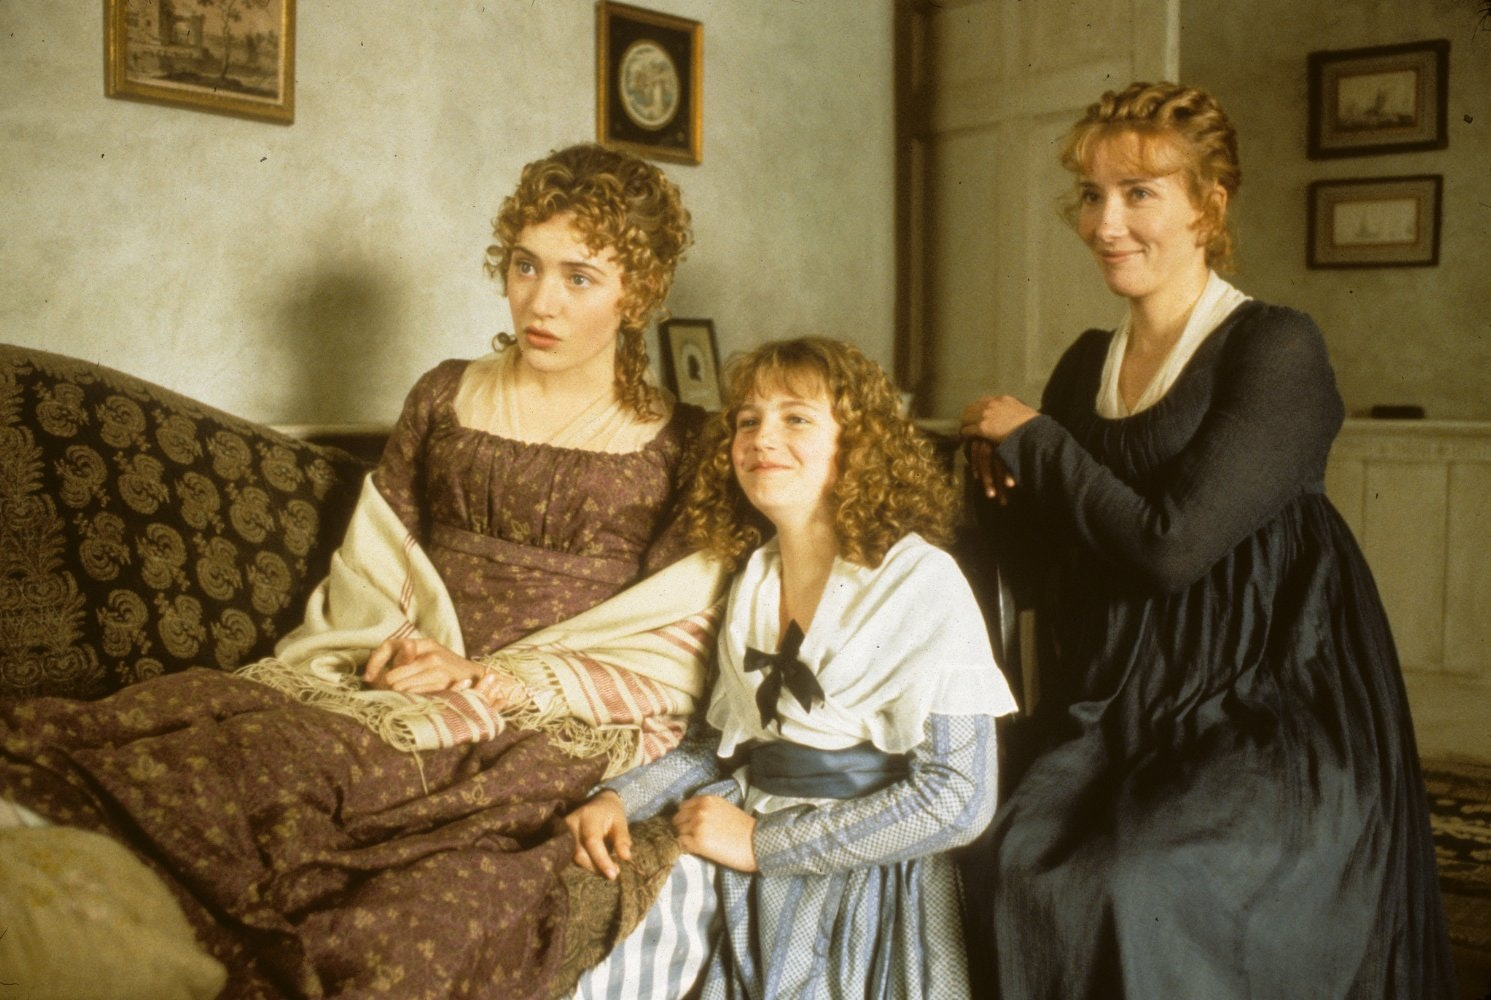 emma jane austen essay Get access to gender representation in emma by jane austen essays only from anti essays listed results 1 - 30 get studying today and get the grades you.